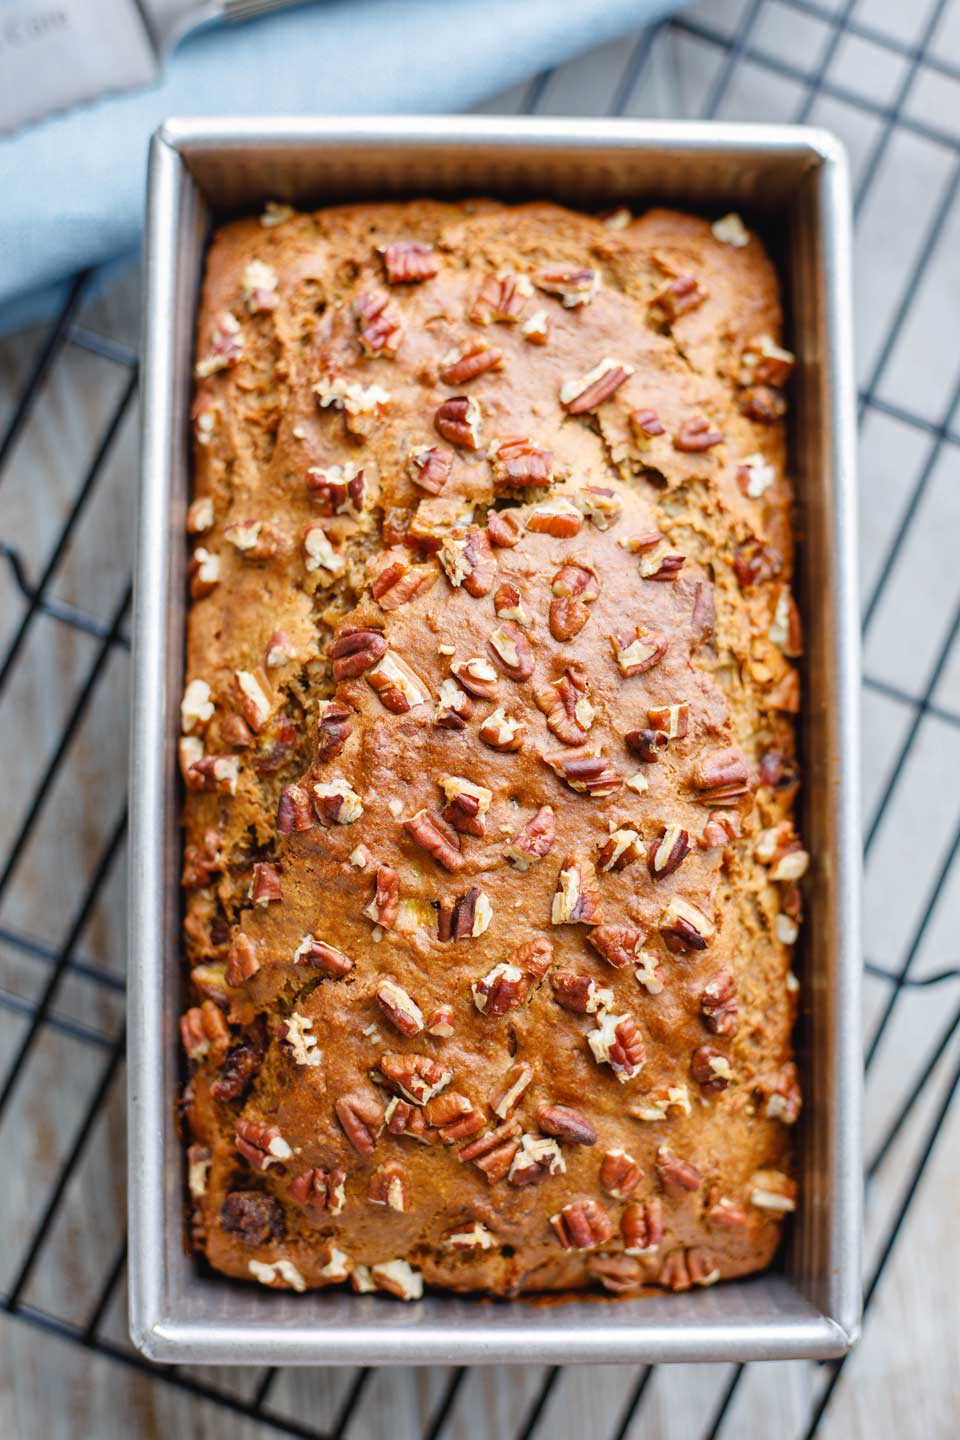 Overhead of a final baked loaf of this Banana-Nut Bread recipe on a cooling rack